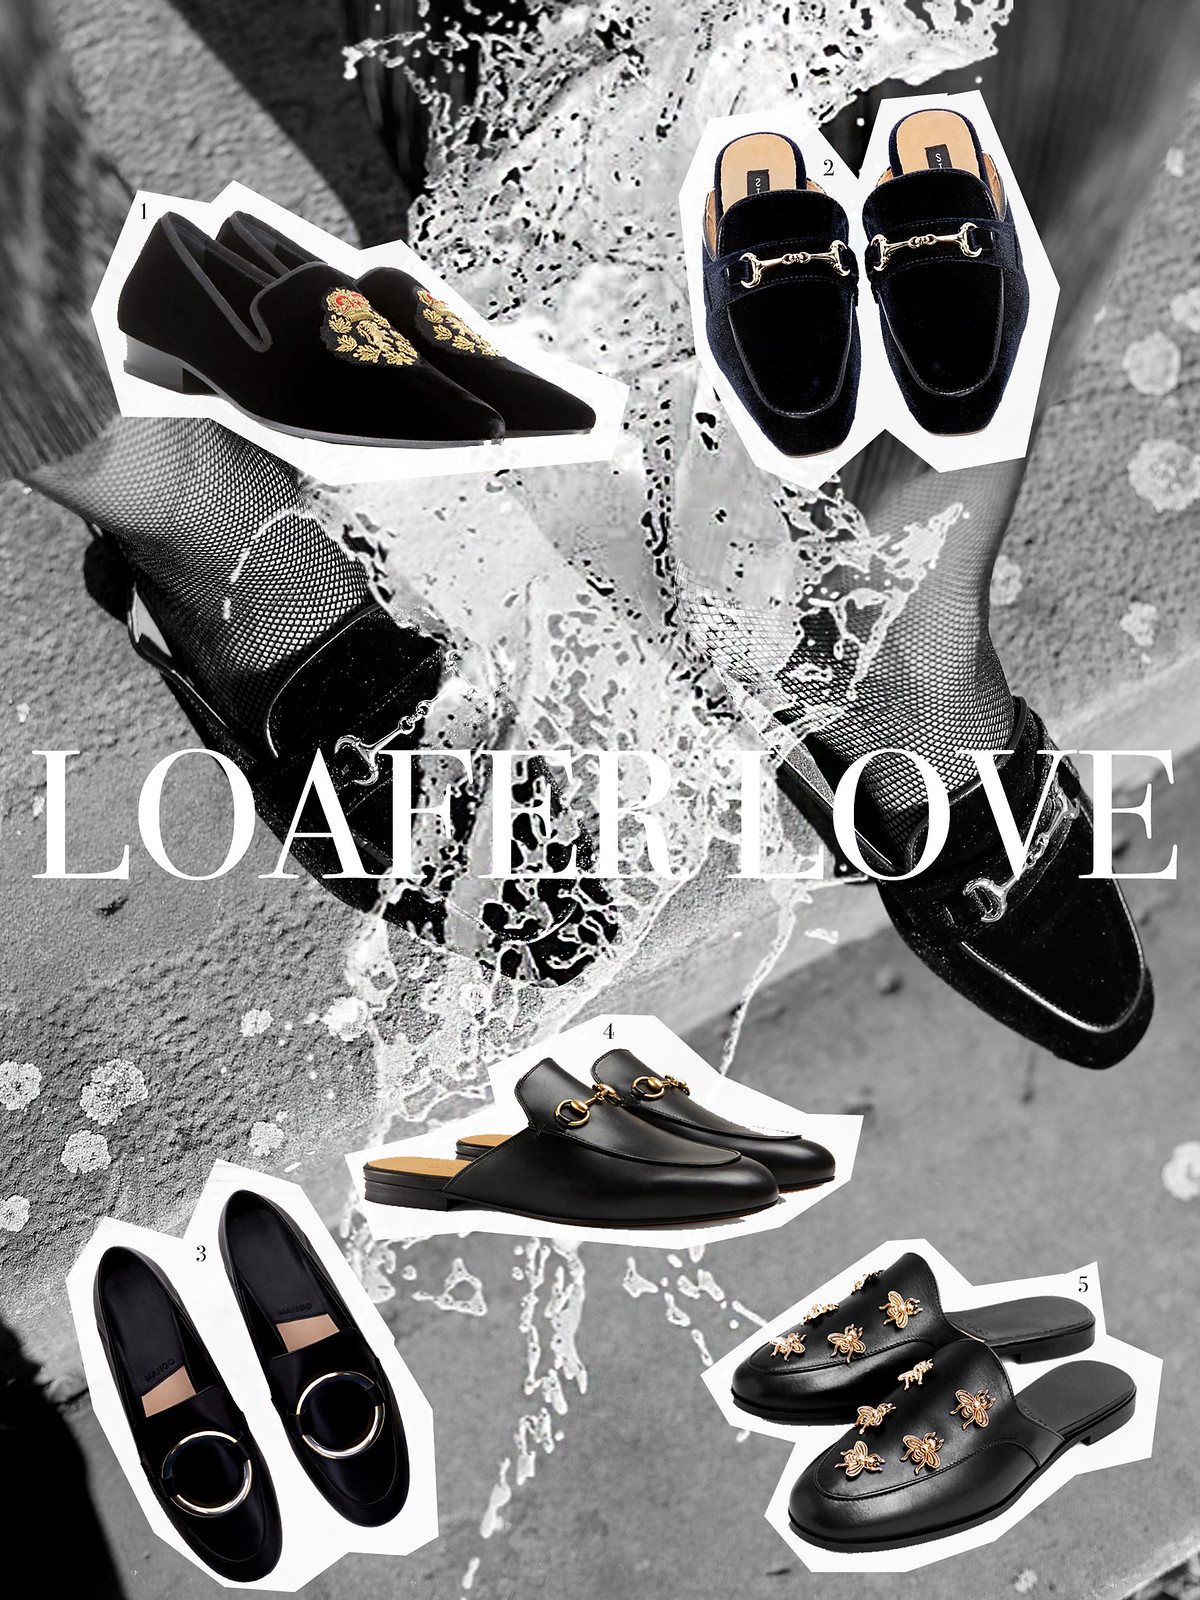 loafer brogues mules slippers velvet gucci princetown shoes autumn minimal black white stripes celine audrey sunglasses gucci soho bag promod blouse earrings hoop statement fashionblogger cats & dogs ricarda schernus modeblogger 7